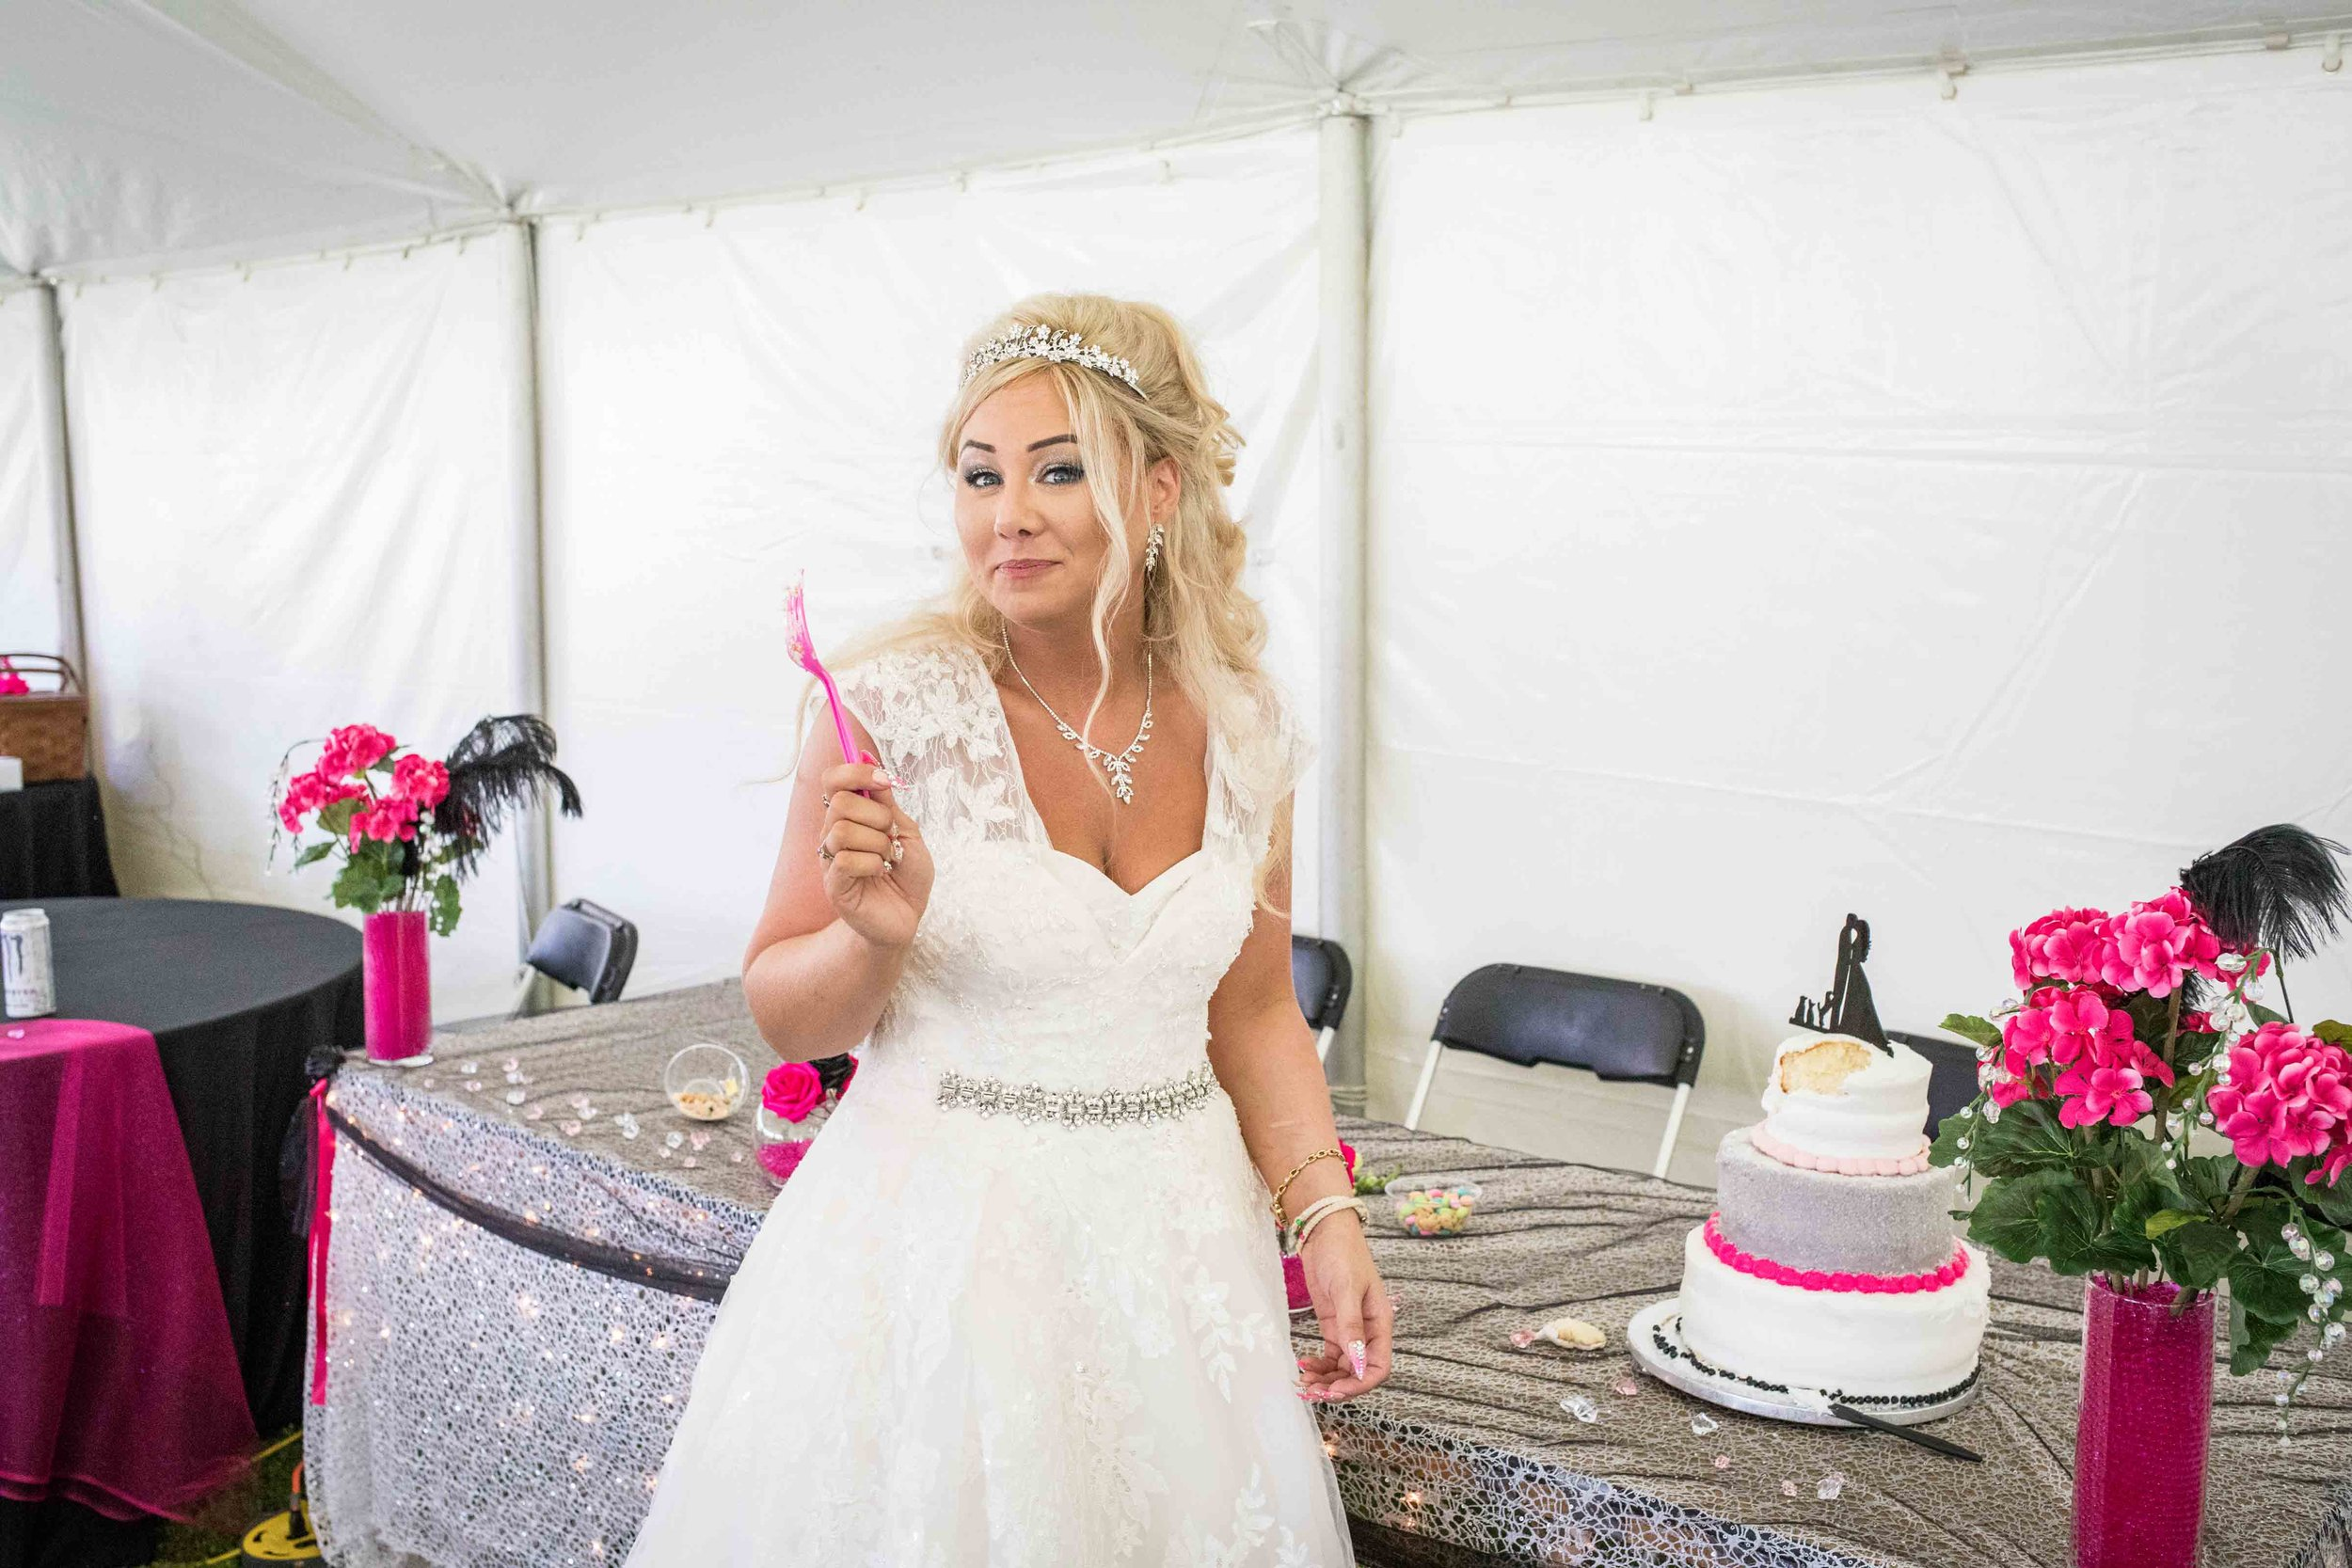 The bride taunts the camera with her pink fork and cake